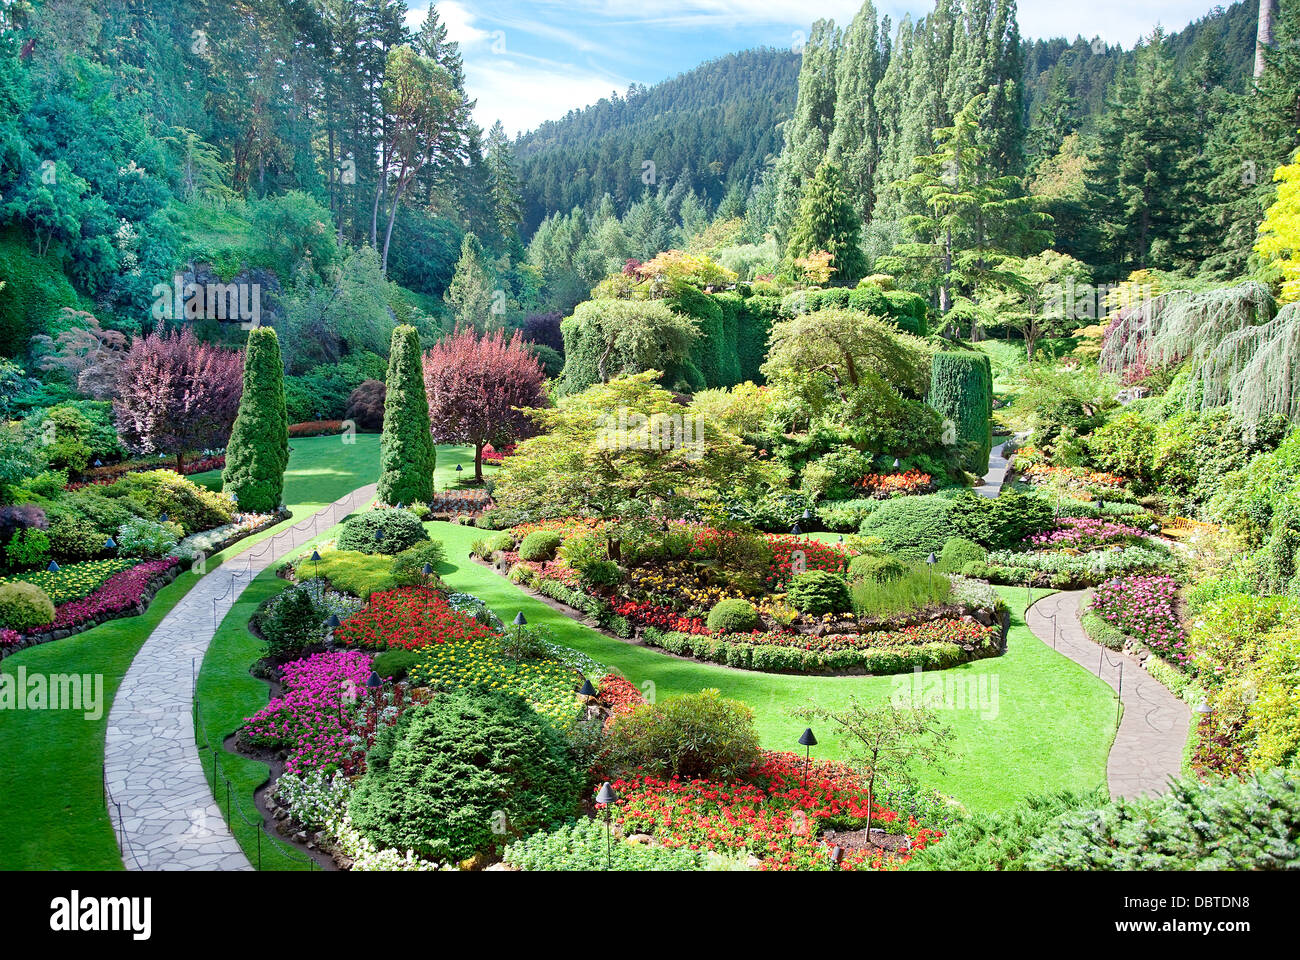 Butchart gardens victoria canada stock photos butchart gardens a view of the sunken garden at butchart gardens central saanich vancouver island thecheapjerseys Image collections